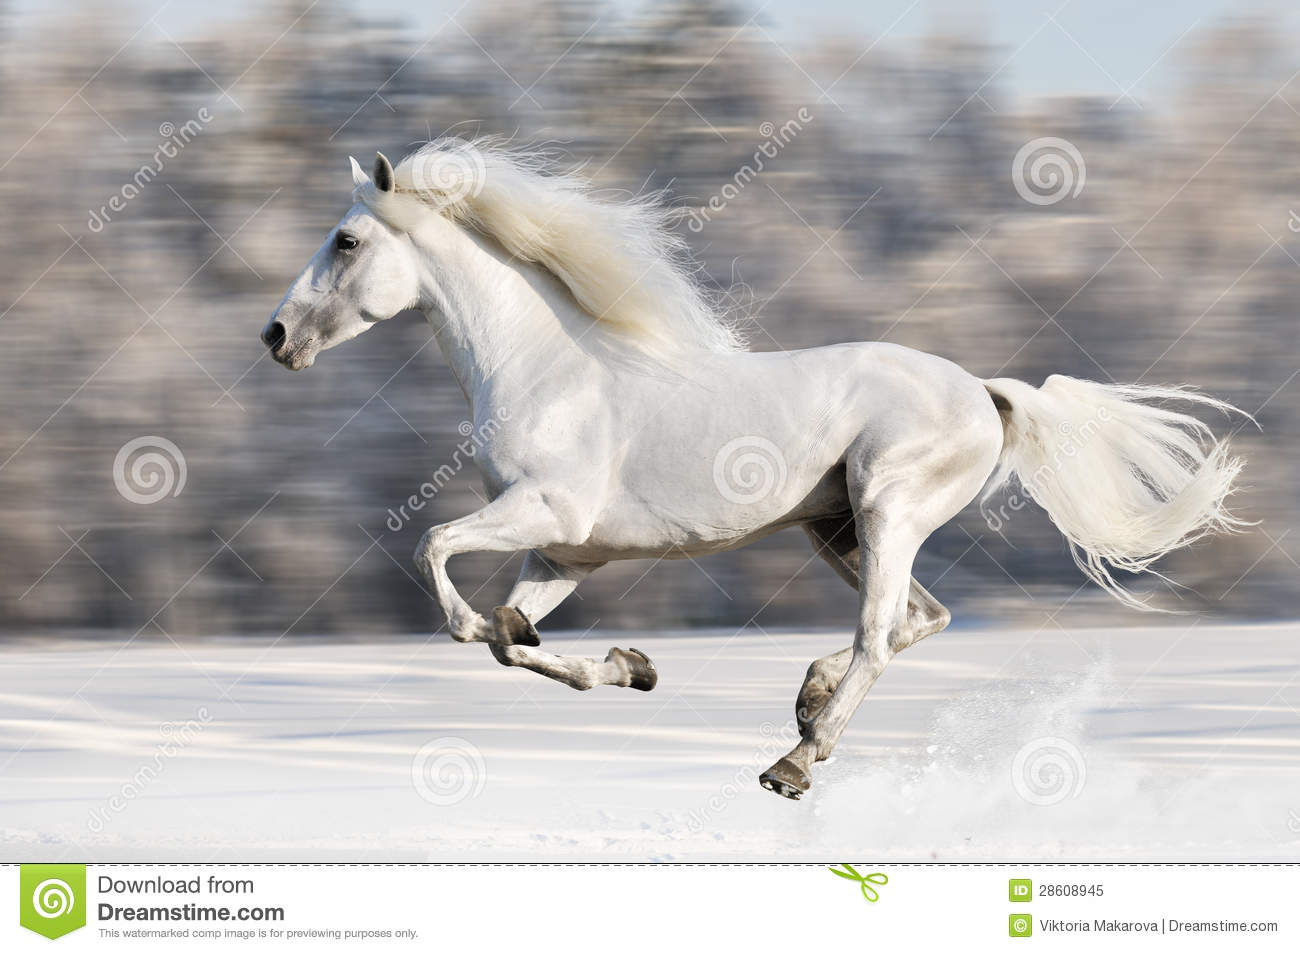 Galloping white horse - photo#10